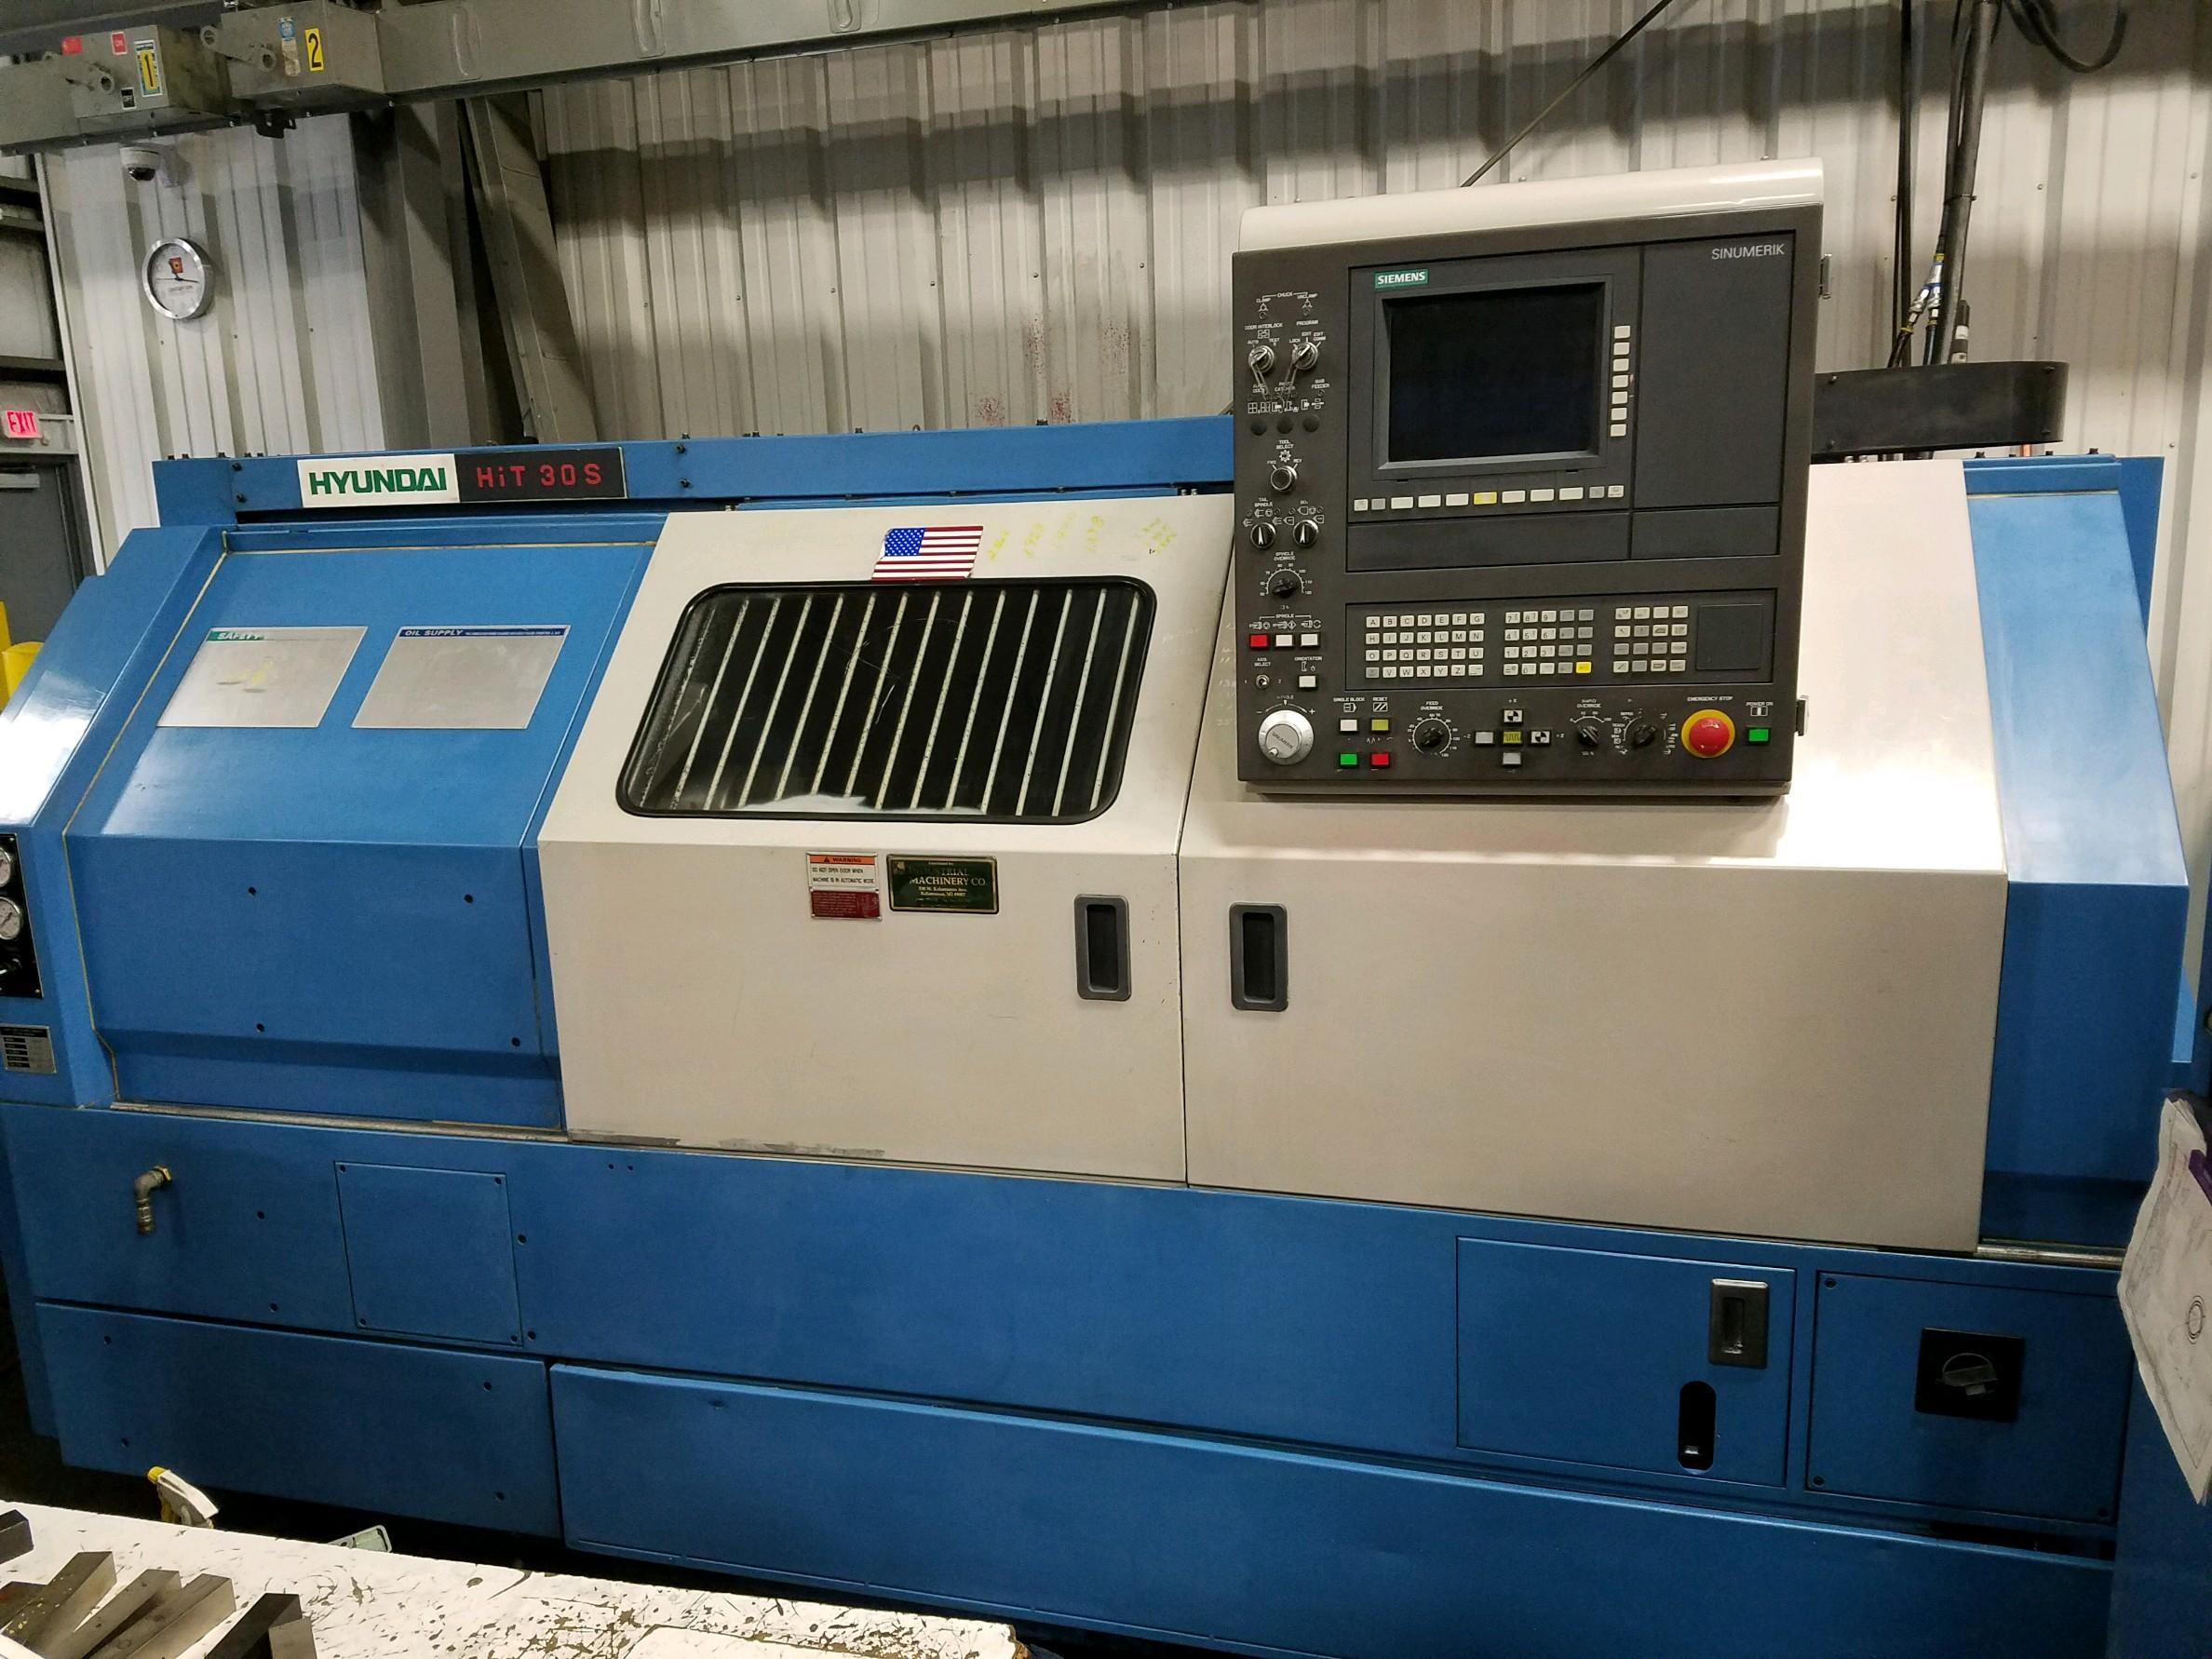 "Hyundai HiT30S CNC Lathe, Siemens Sinumerik Control, 12"" Chuck, 12 Position Turret, Hydraulic Tailstock, Tool Eye, Good Condition, 2001"